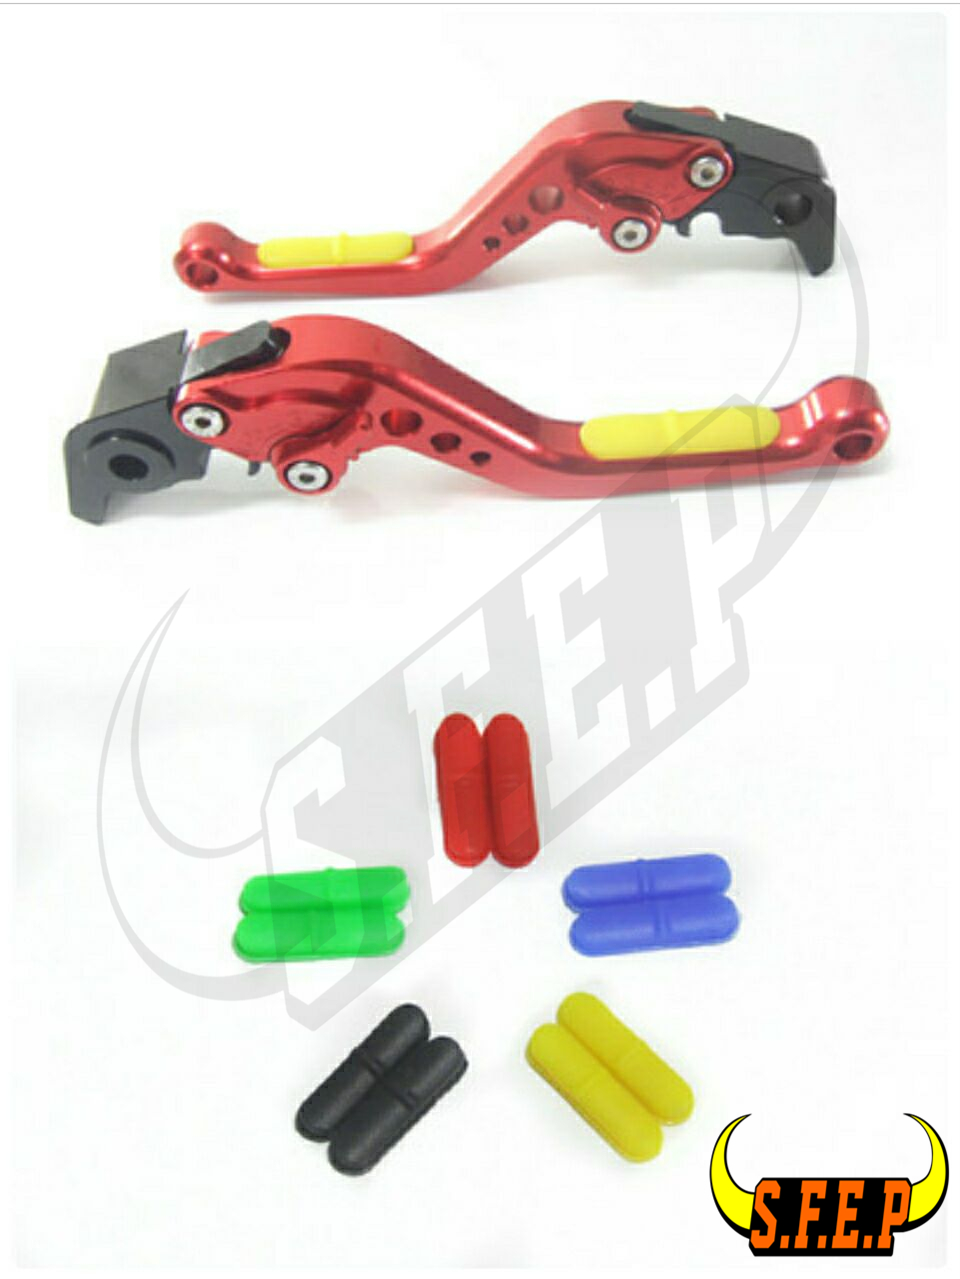 CNC Adjustable Motorcycle Brake and Clutch Levers with Anti-Slip For BMW HP2 Megamoto 2006-2009